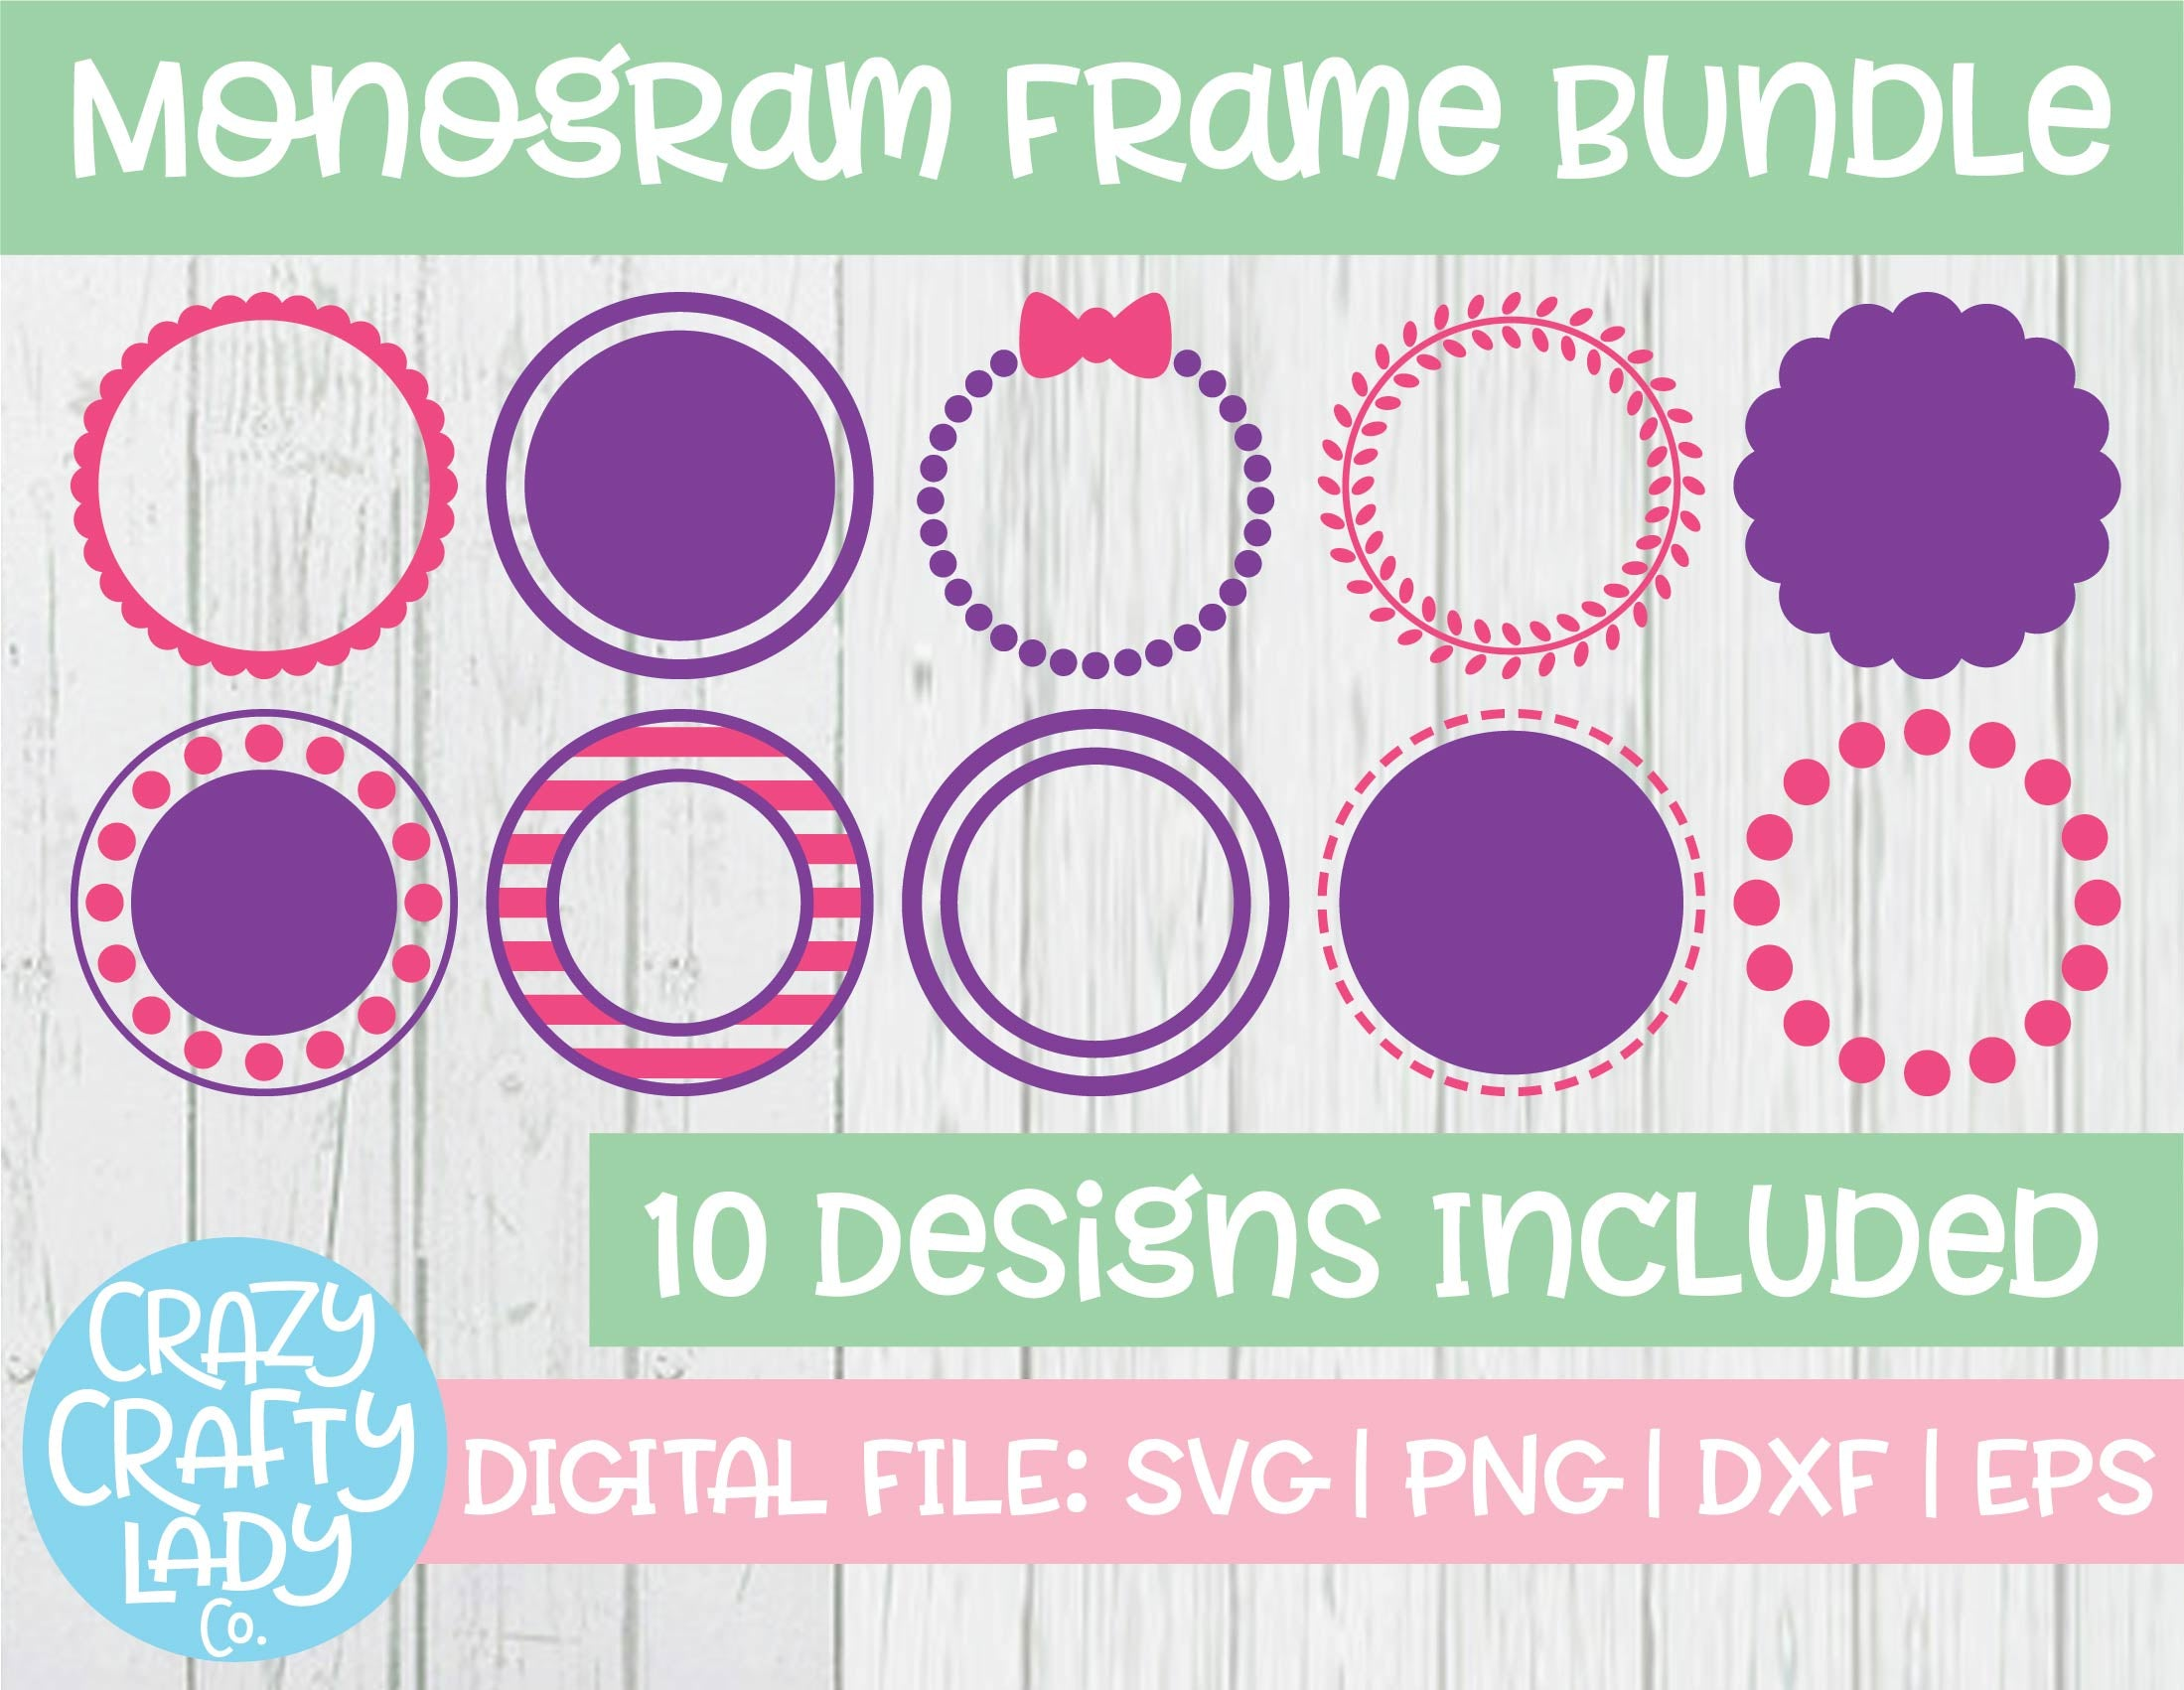 Monogram Frame Svg Cut File Bundle Crazy Crafty Lady Co